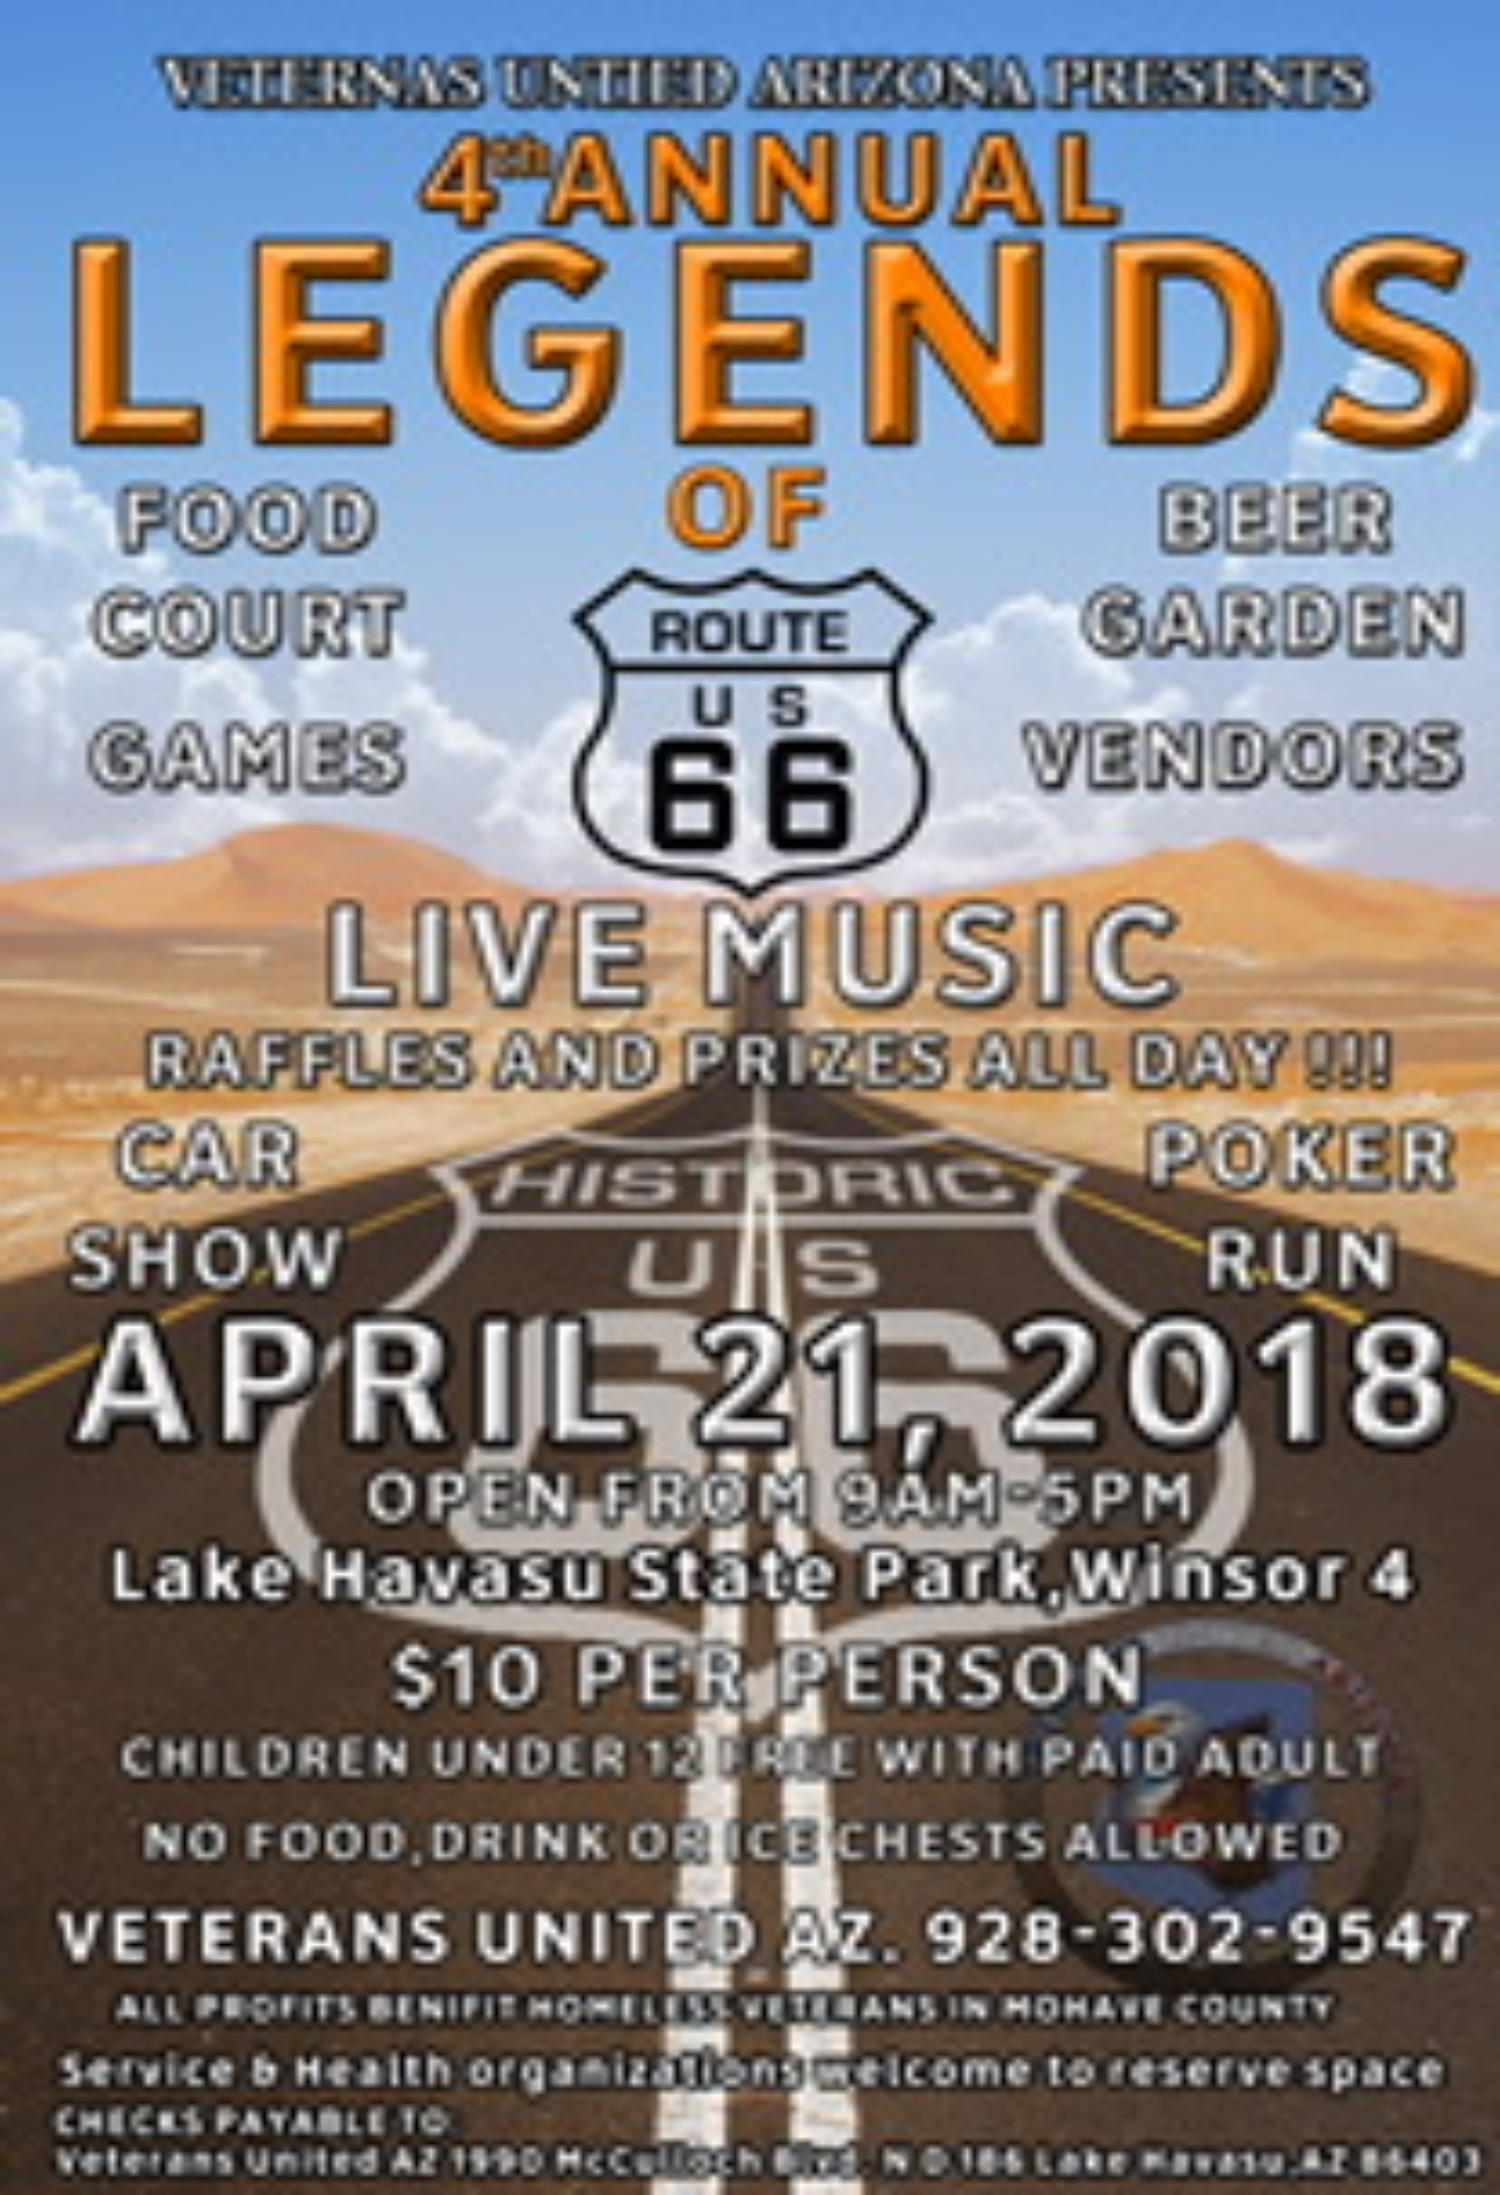 Lake Havasu Legends of Route 66